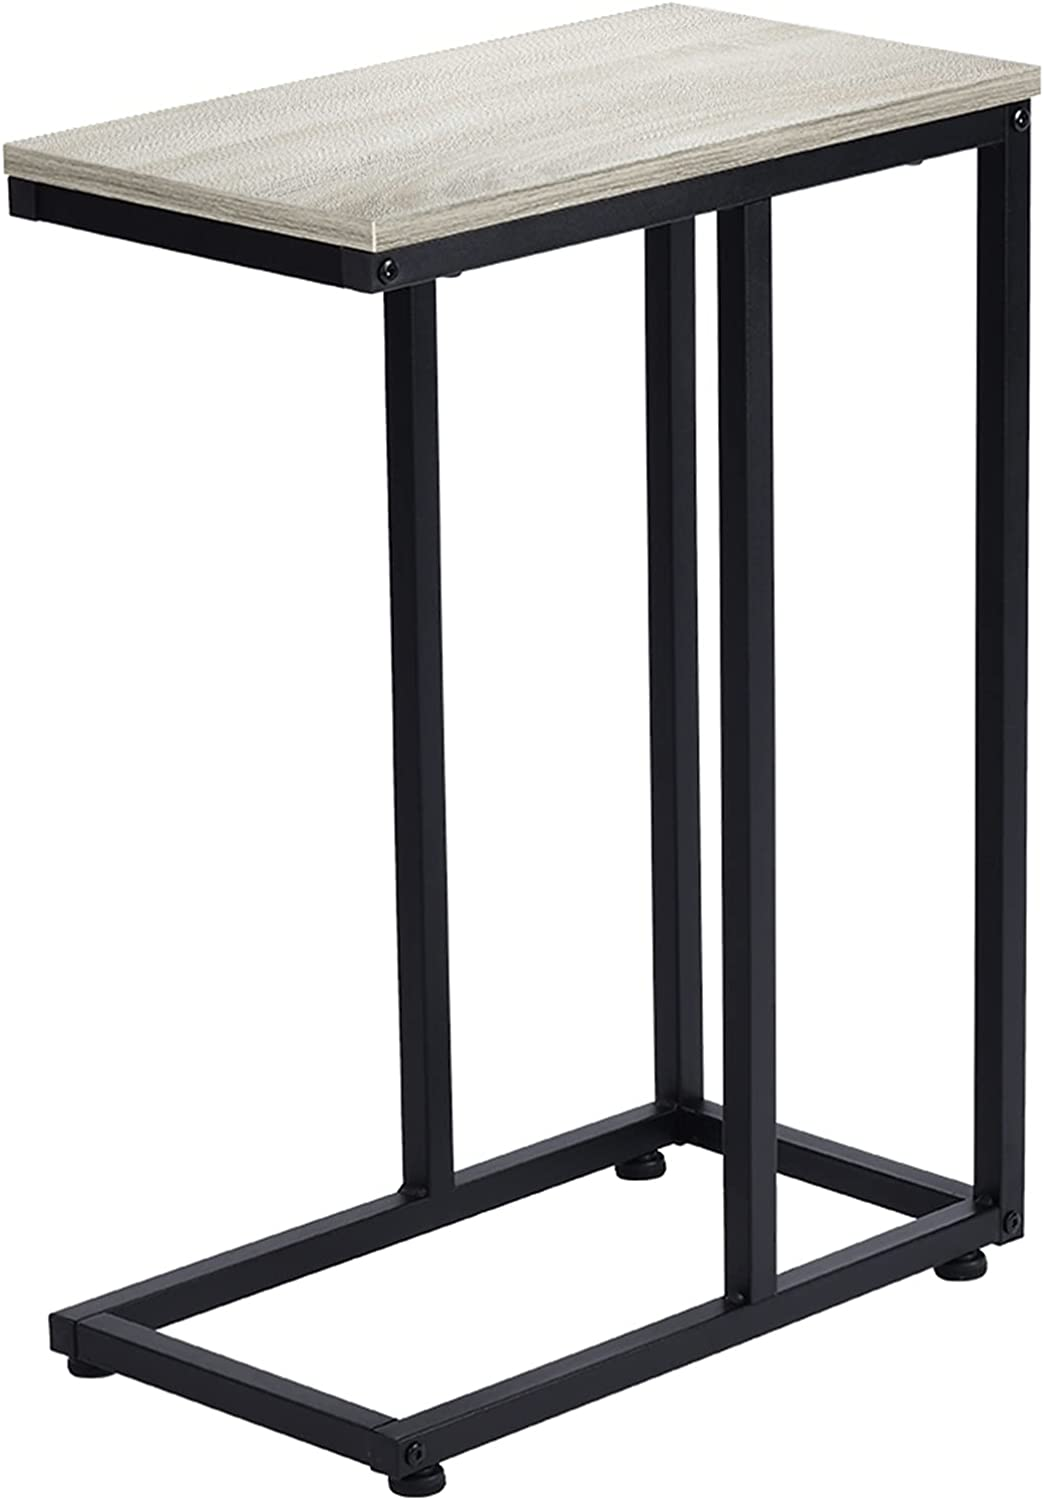 CHHF Simple Popular standard Side Table Industrial Telephone Iron Sofa Acc Soldering